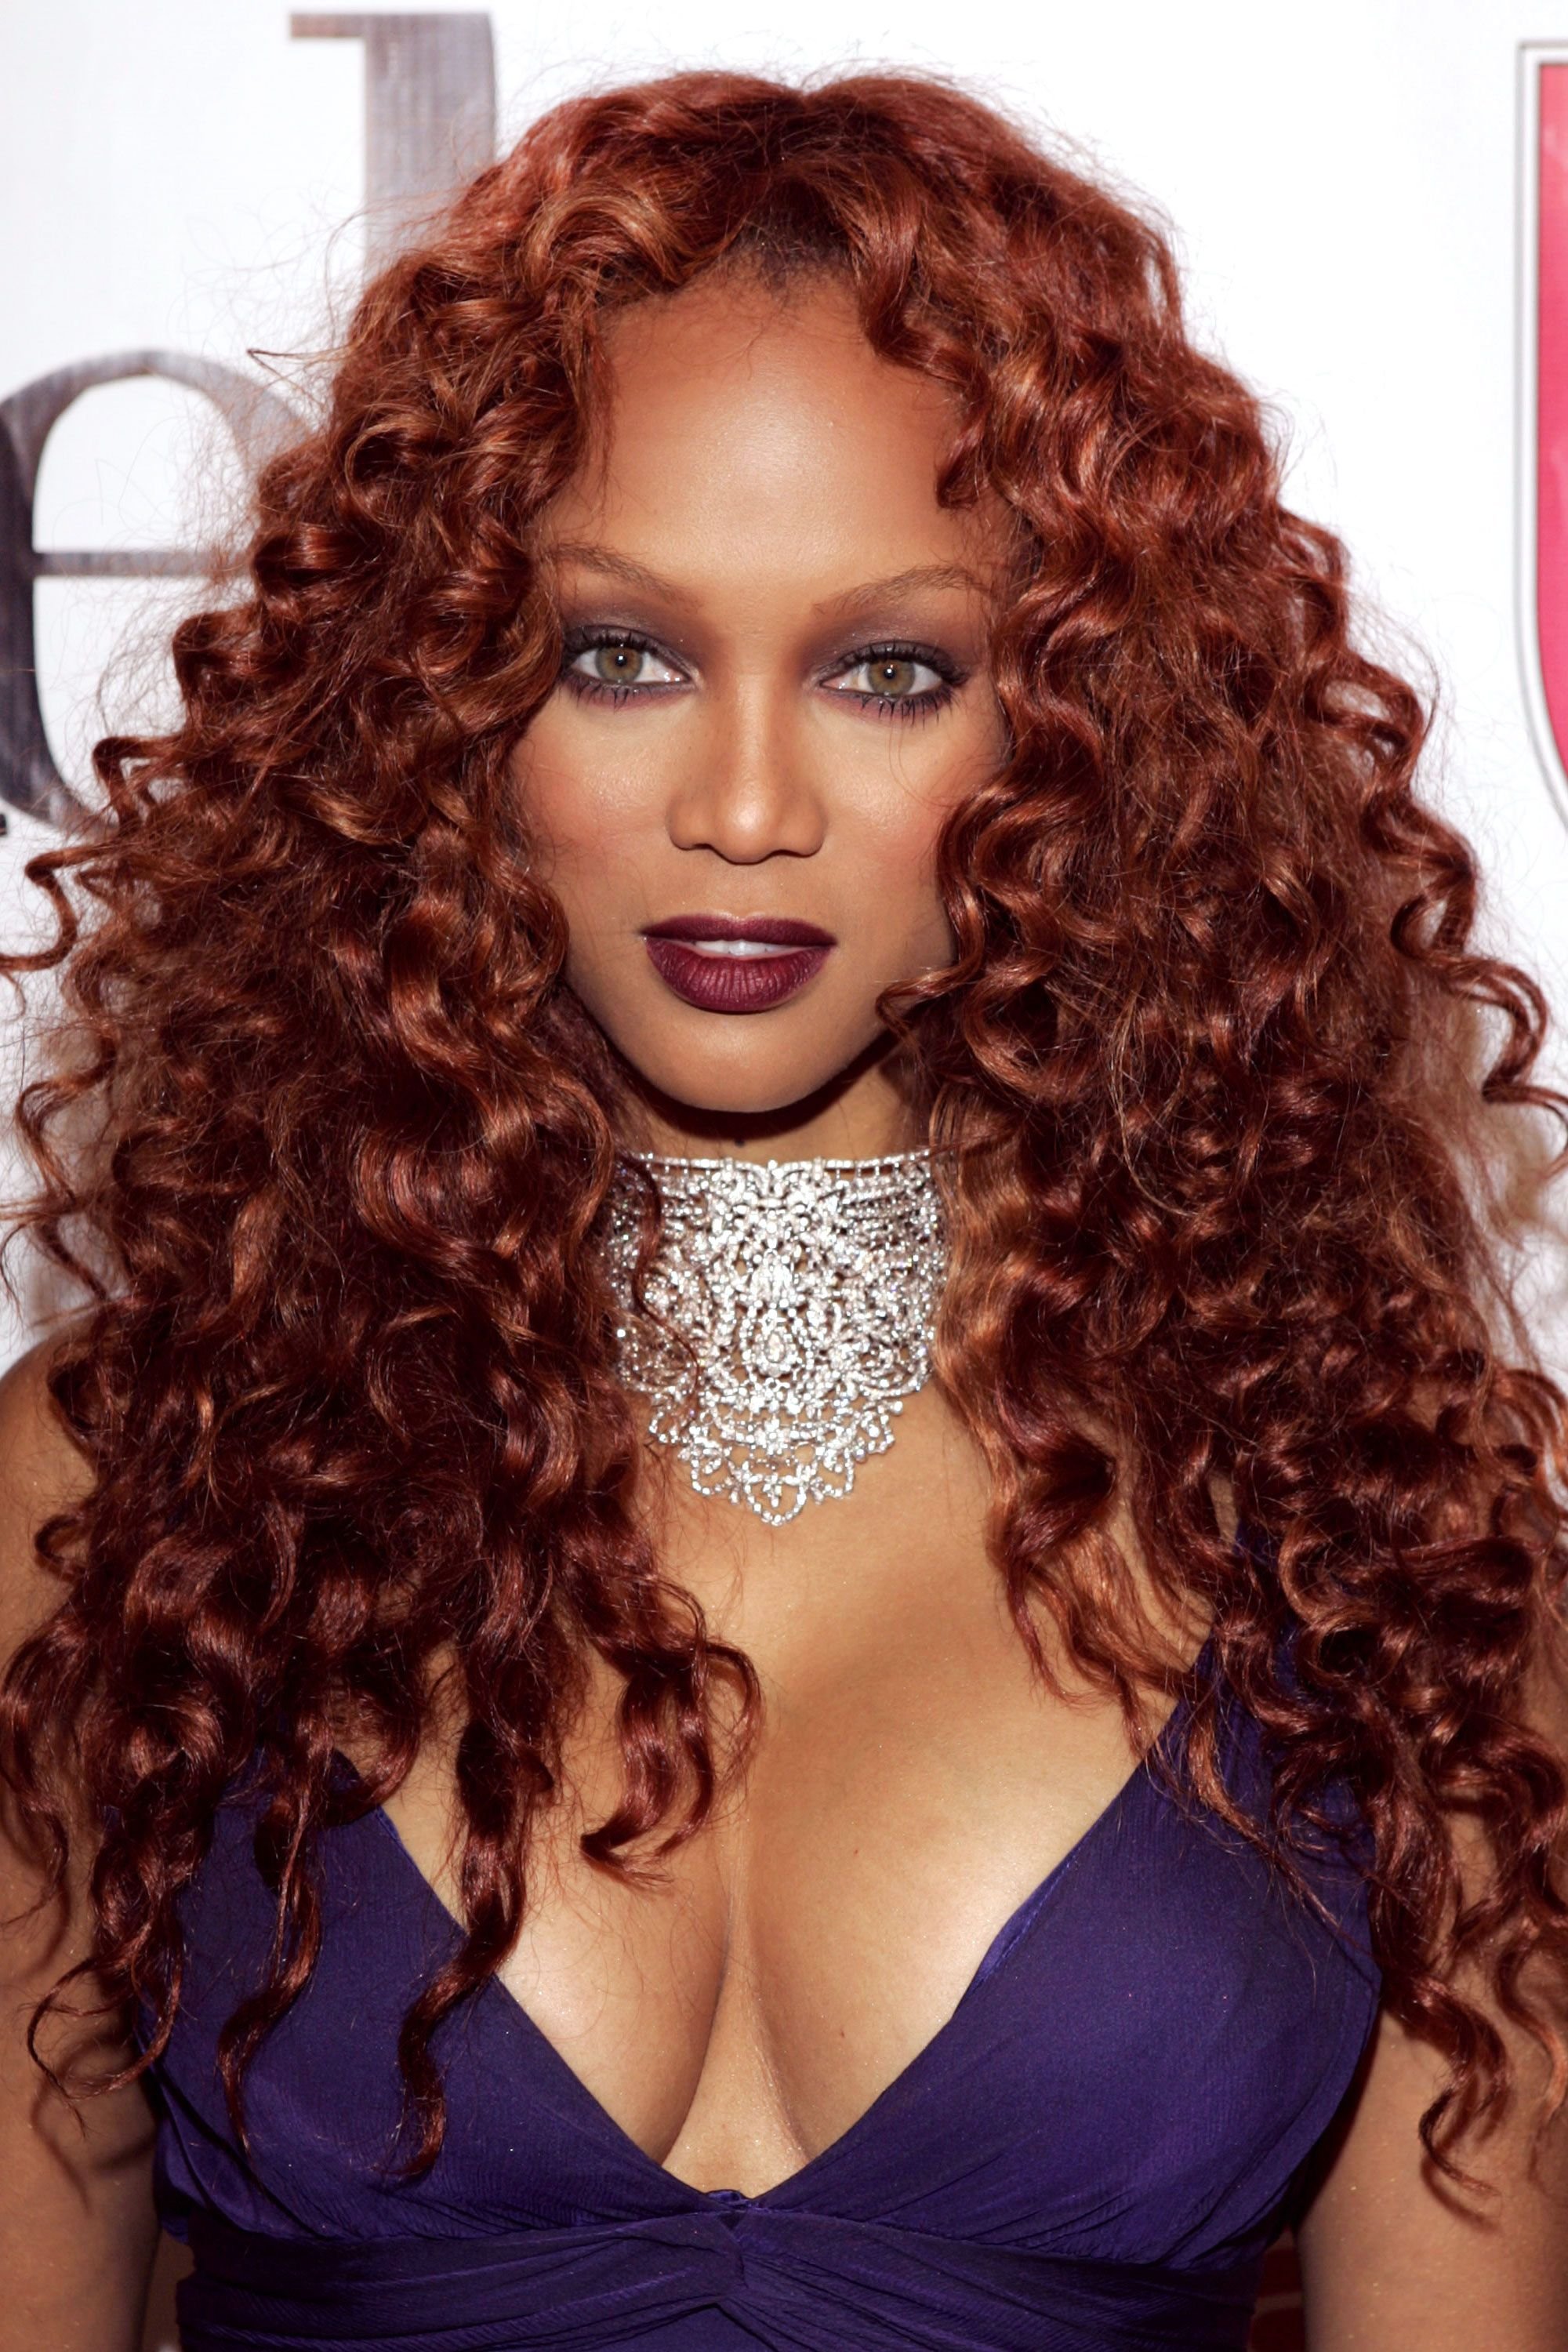 The Most Iconic Red Hair Moments Of All Time Dark red